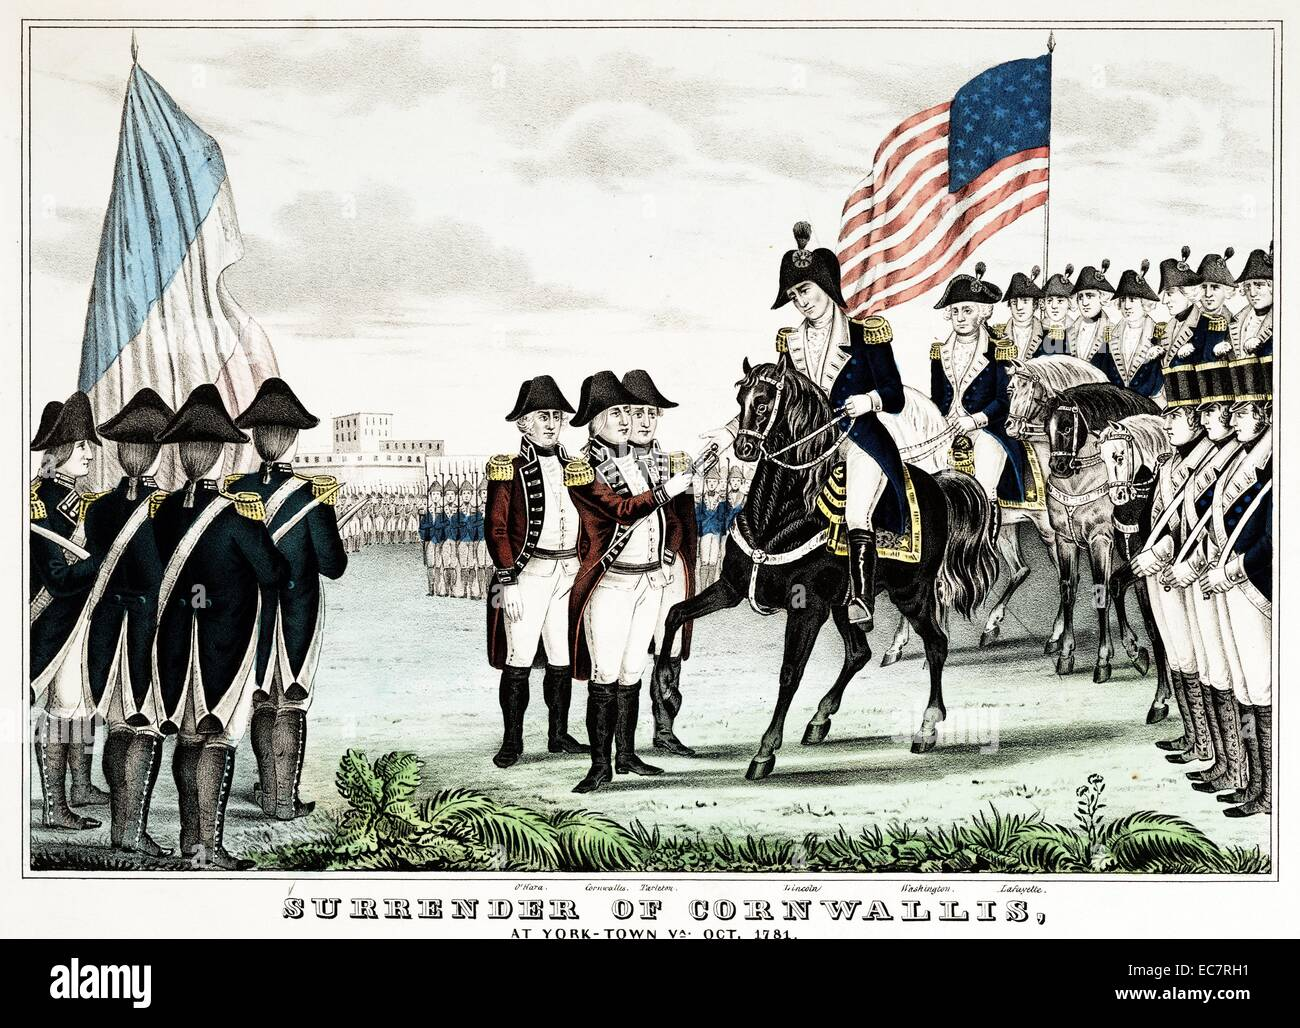 Surrender of General Cornwallis; at York-Town Virginia; USA in 1781.  Creator N. Currier c1846. Print shows Major General